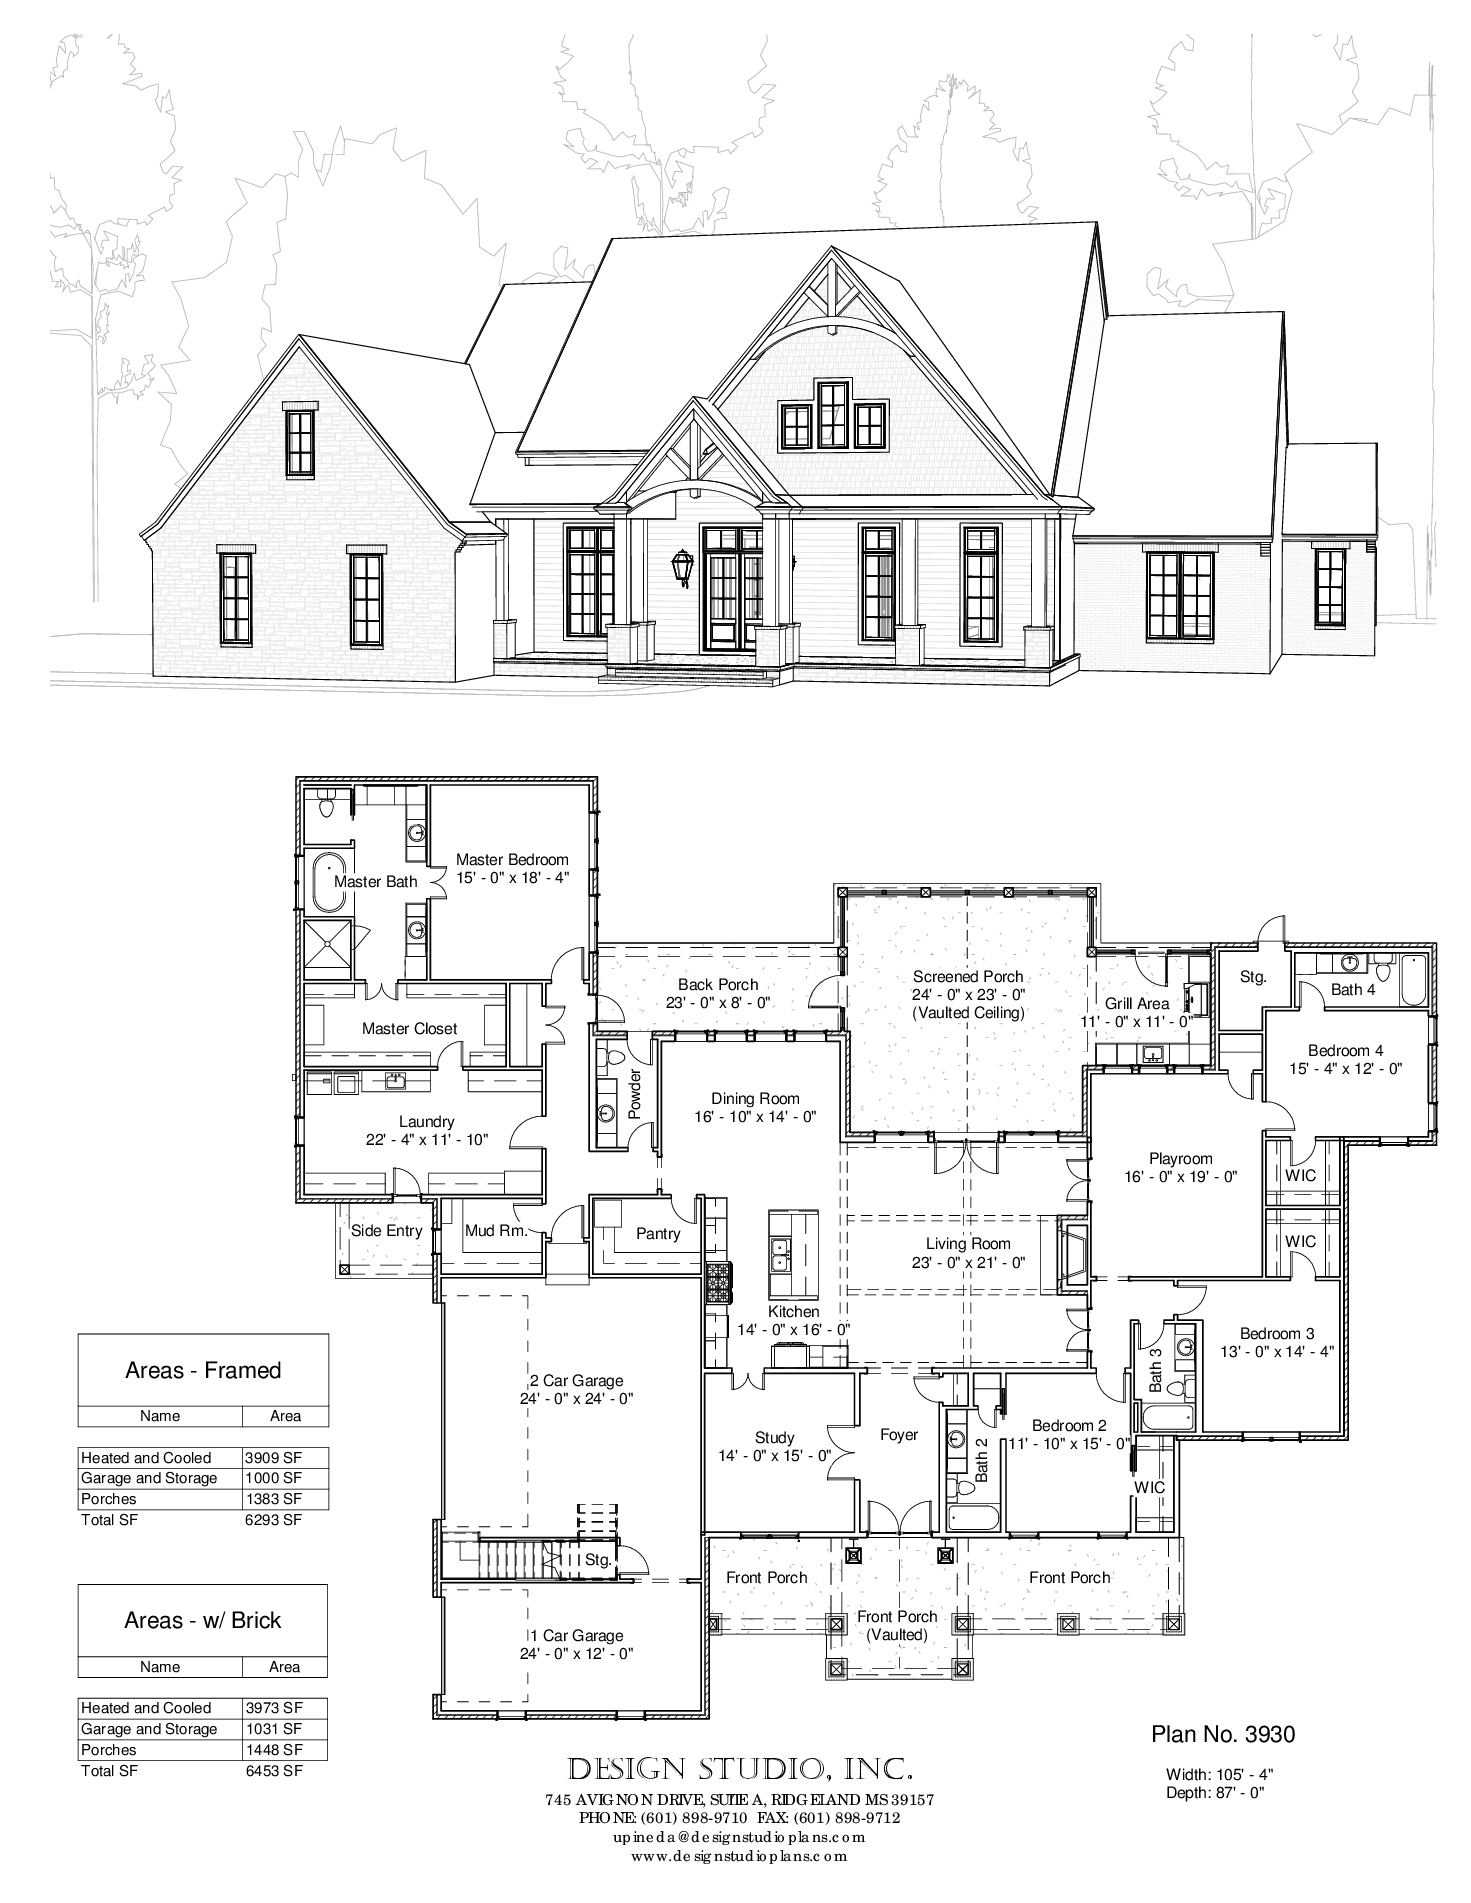 House Plans In Jackson Ms Senior Living & Retirement Munity In Ridgeland Ms  – luckyscabinets